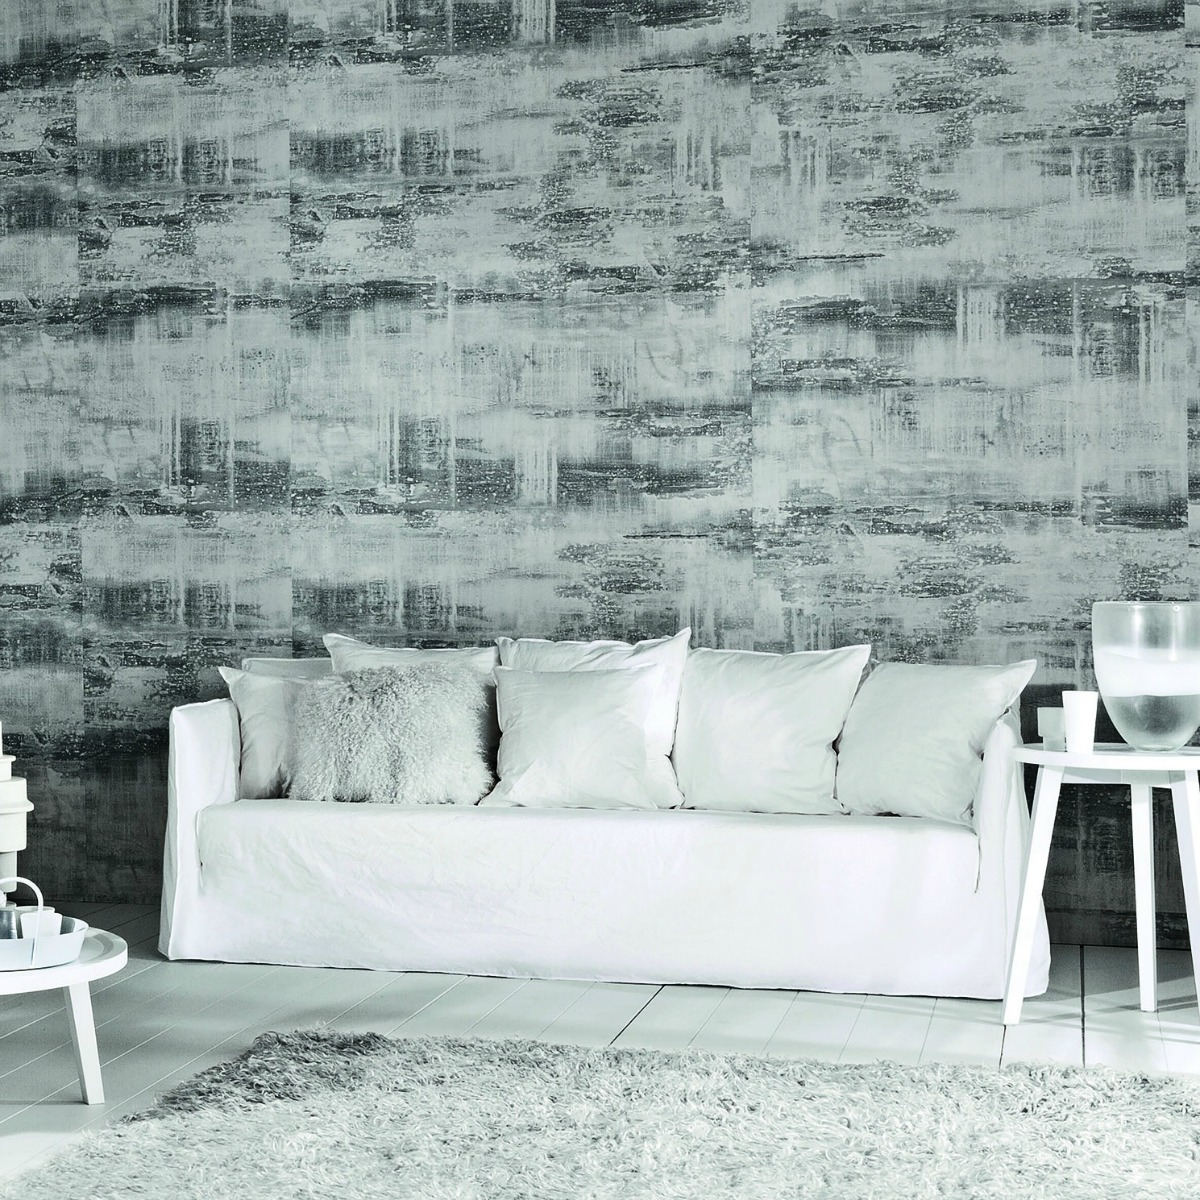 gervasoni ghost 12 - Sofa, Four back cushions in dacron and down 60 x 60 cm and two 50 x 50 cm. with white linen covers.